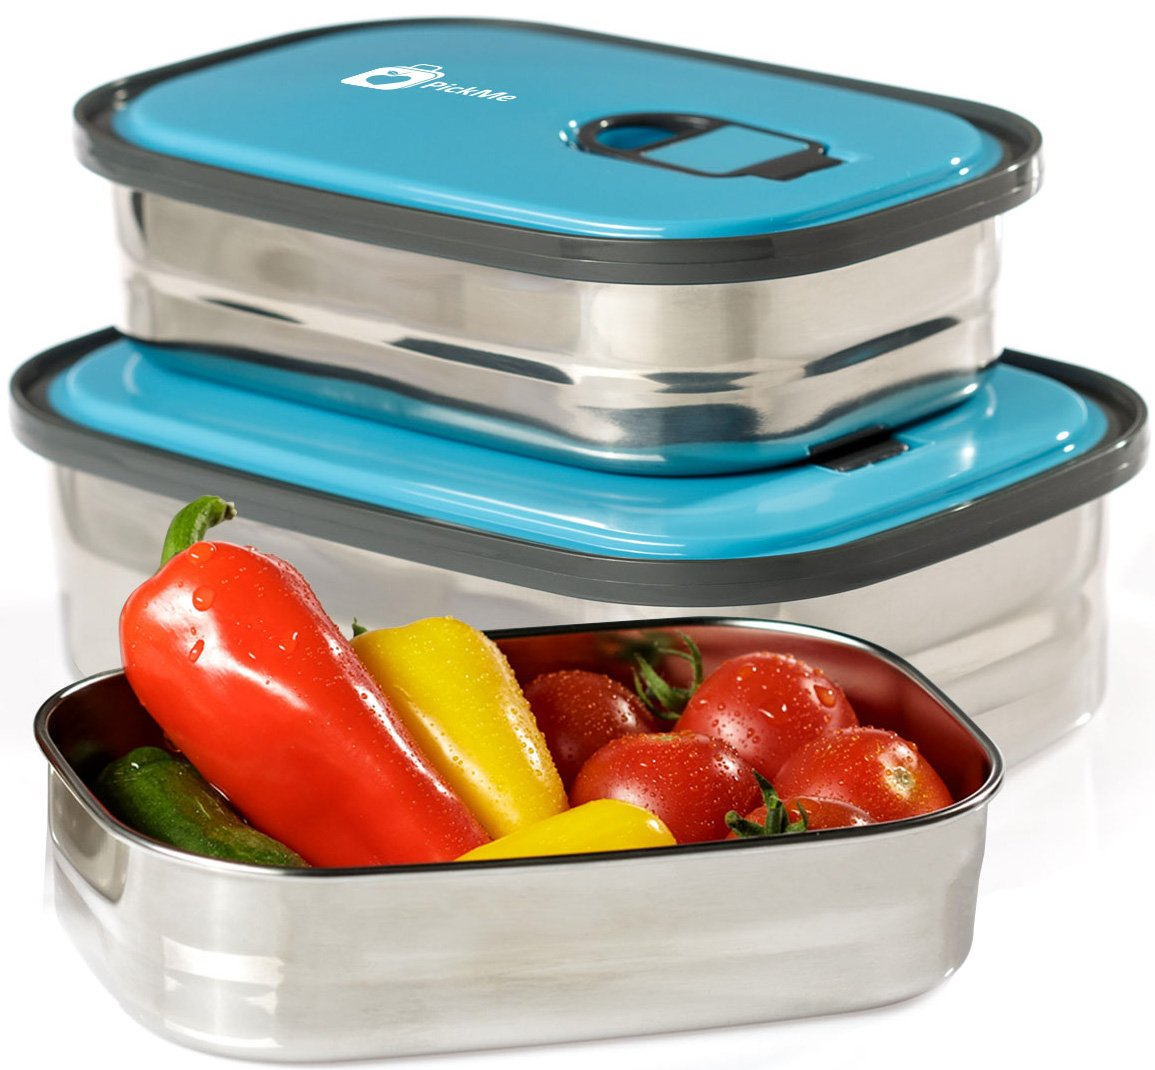 Bento Lunch Box Food Container Storage Set 3 In 1. Leak Proof Stainless Steel Can with Lids. Healthy Takeaway - Kids - Adults For Outdoor Meals. FREE BONUS-Enjoy Fun & Decorative Stickers. BPA Free by Monka